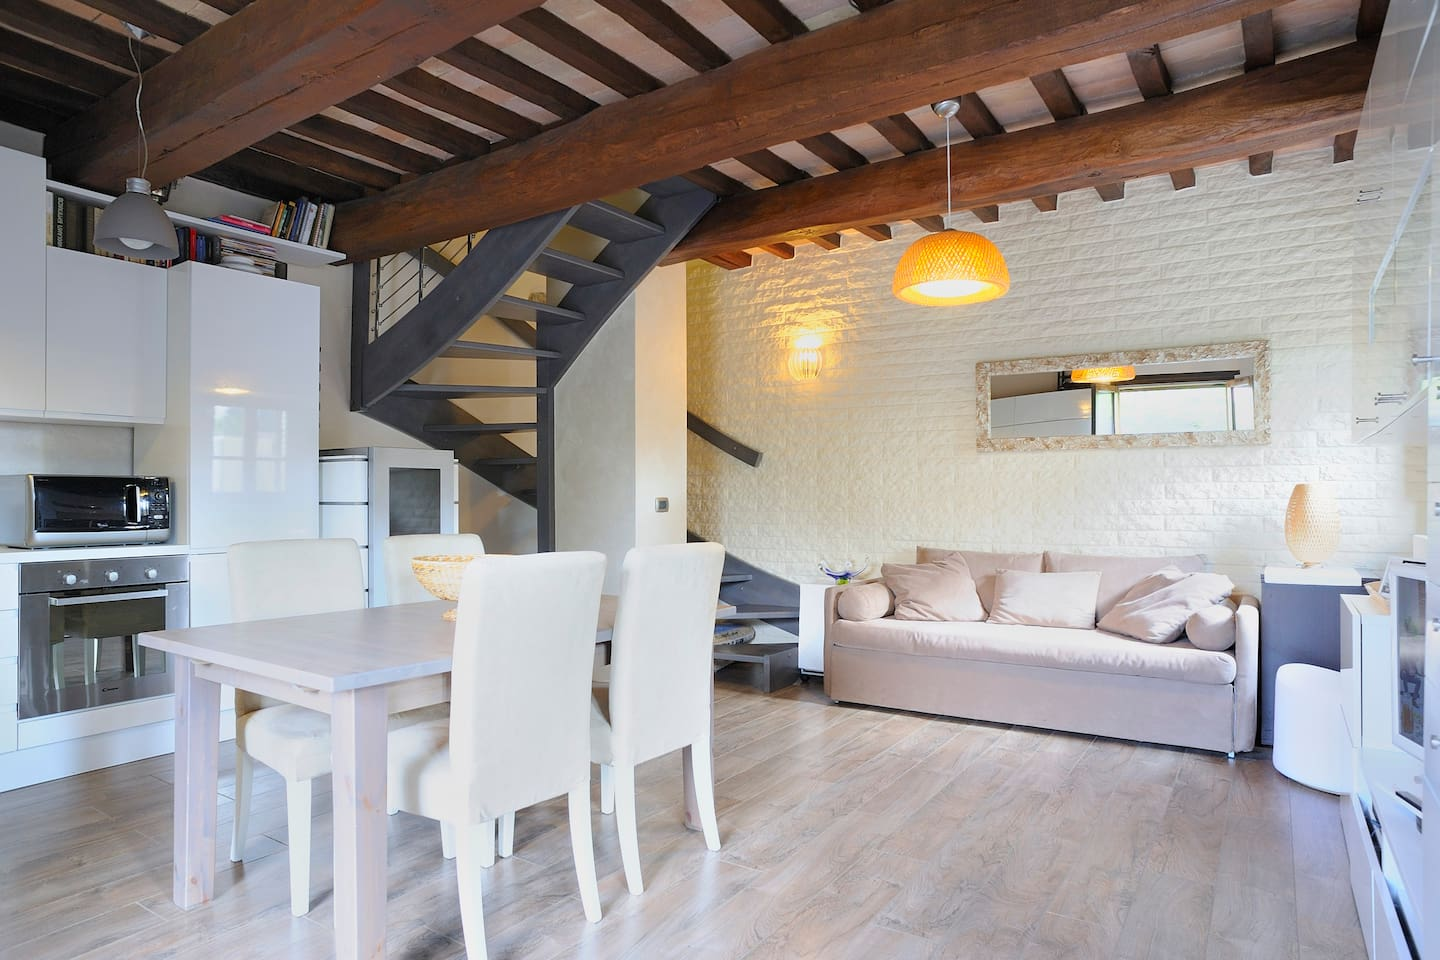 Loft room in Umbrian Country House